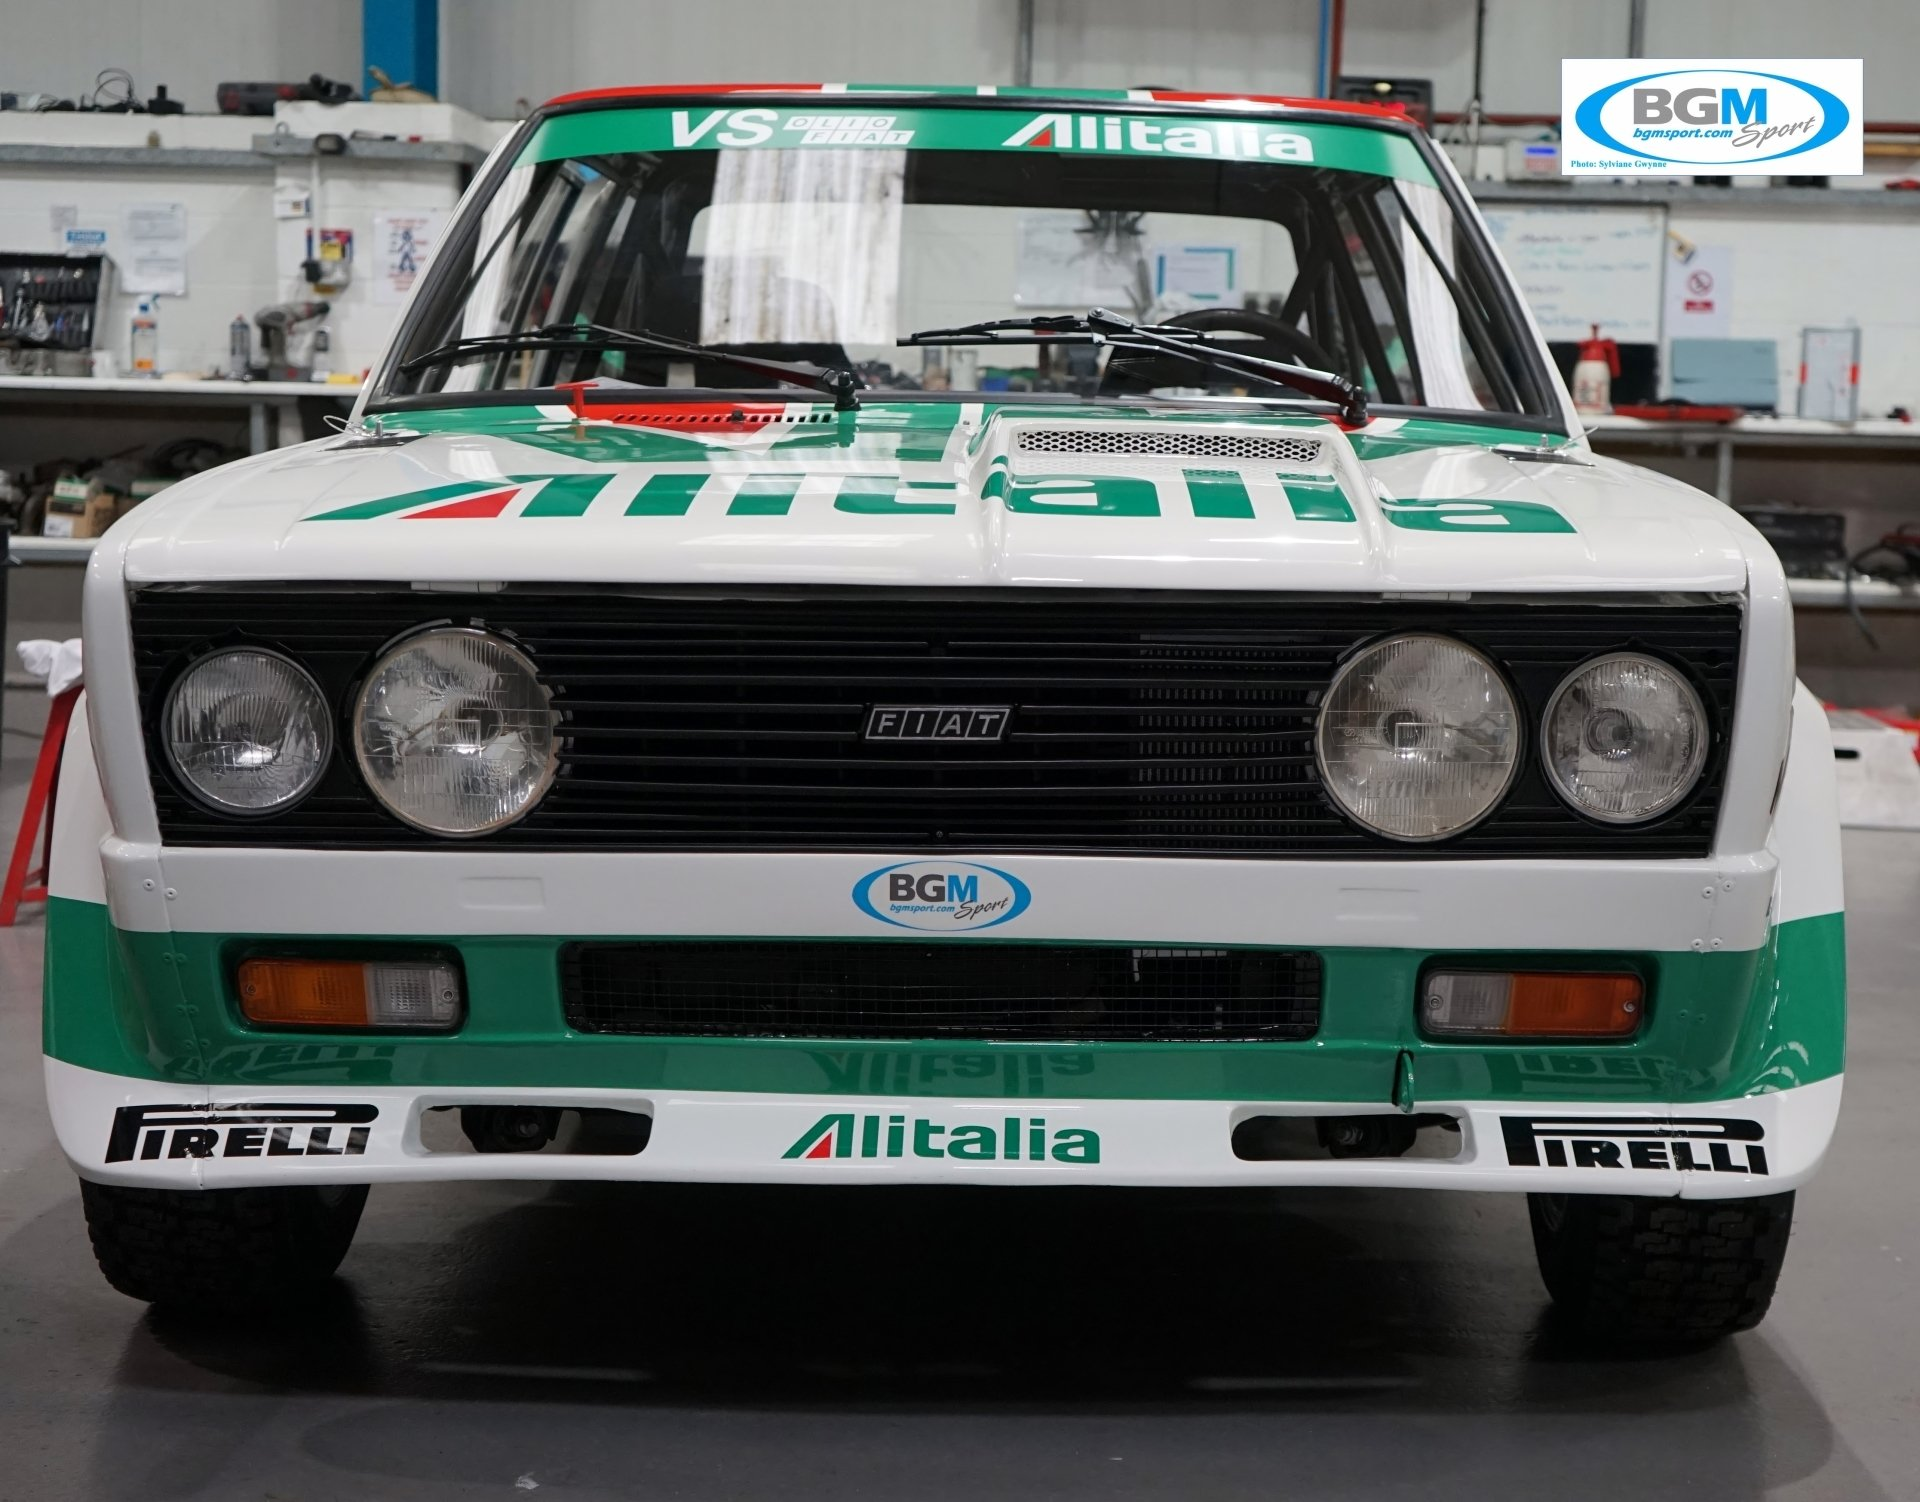 fiat-131-abarth-grp-4-rally-car-47